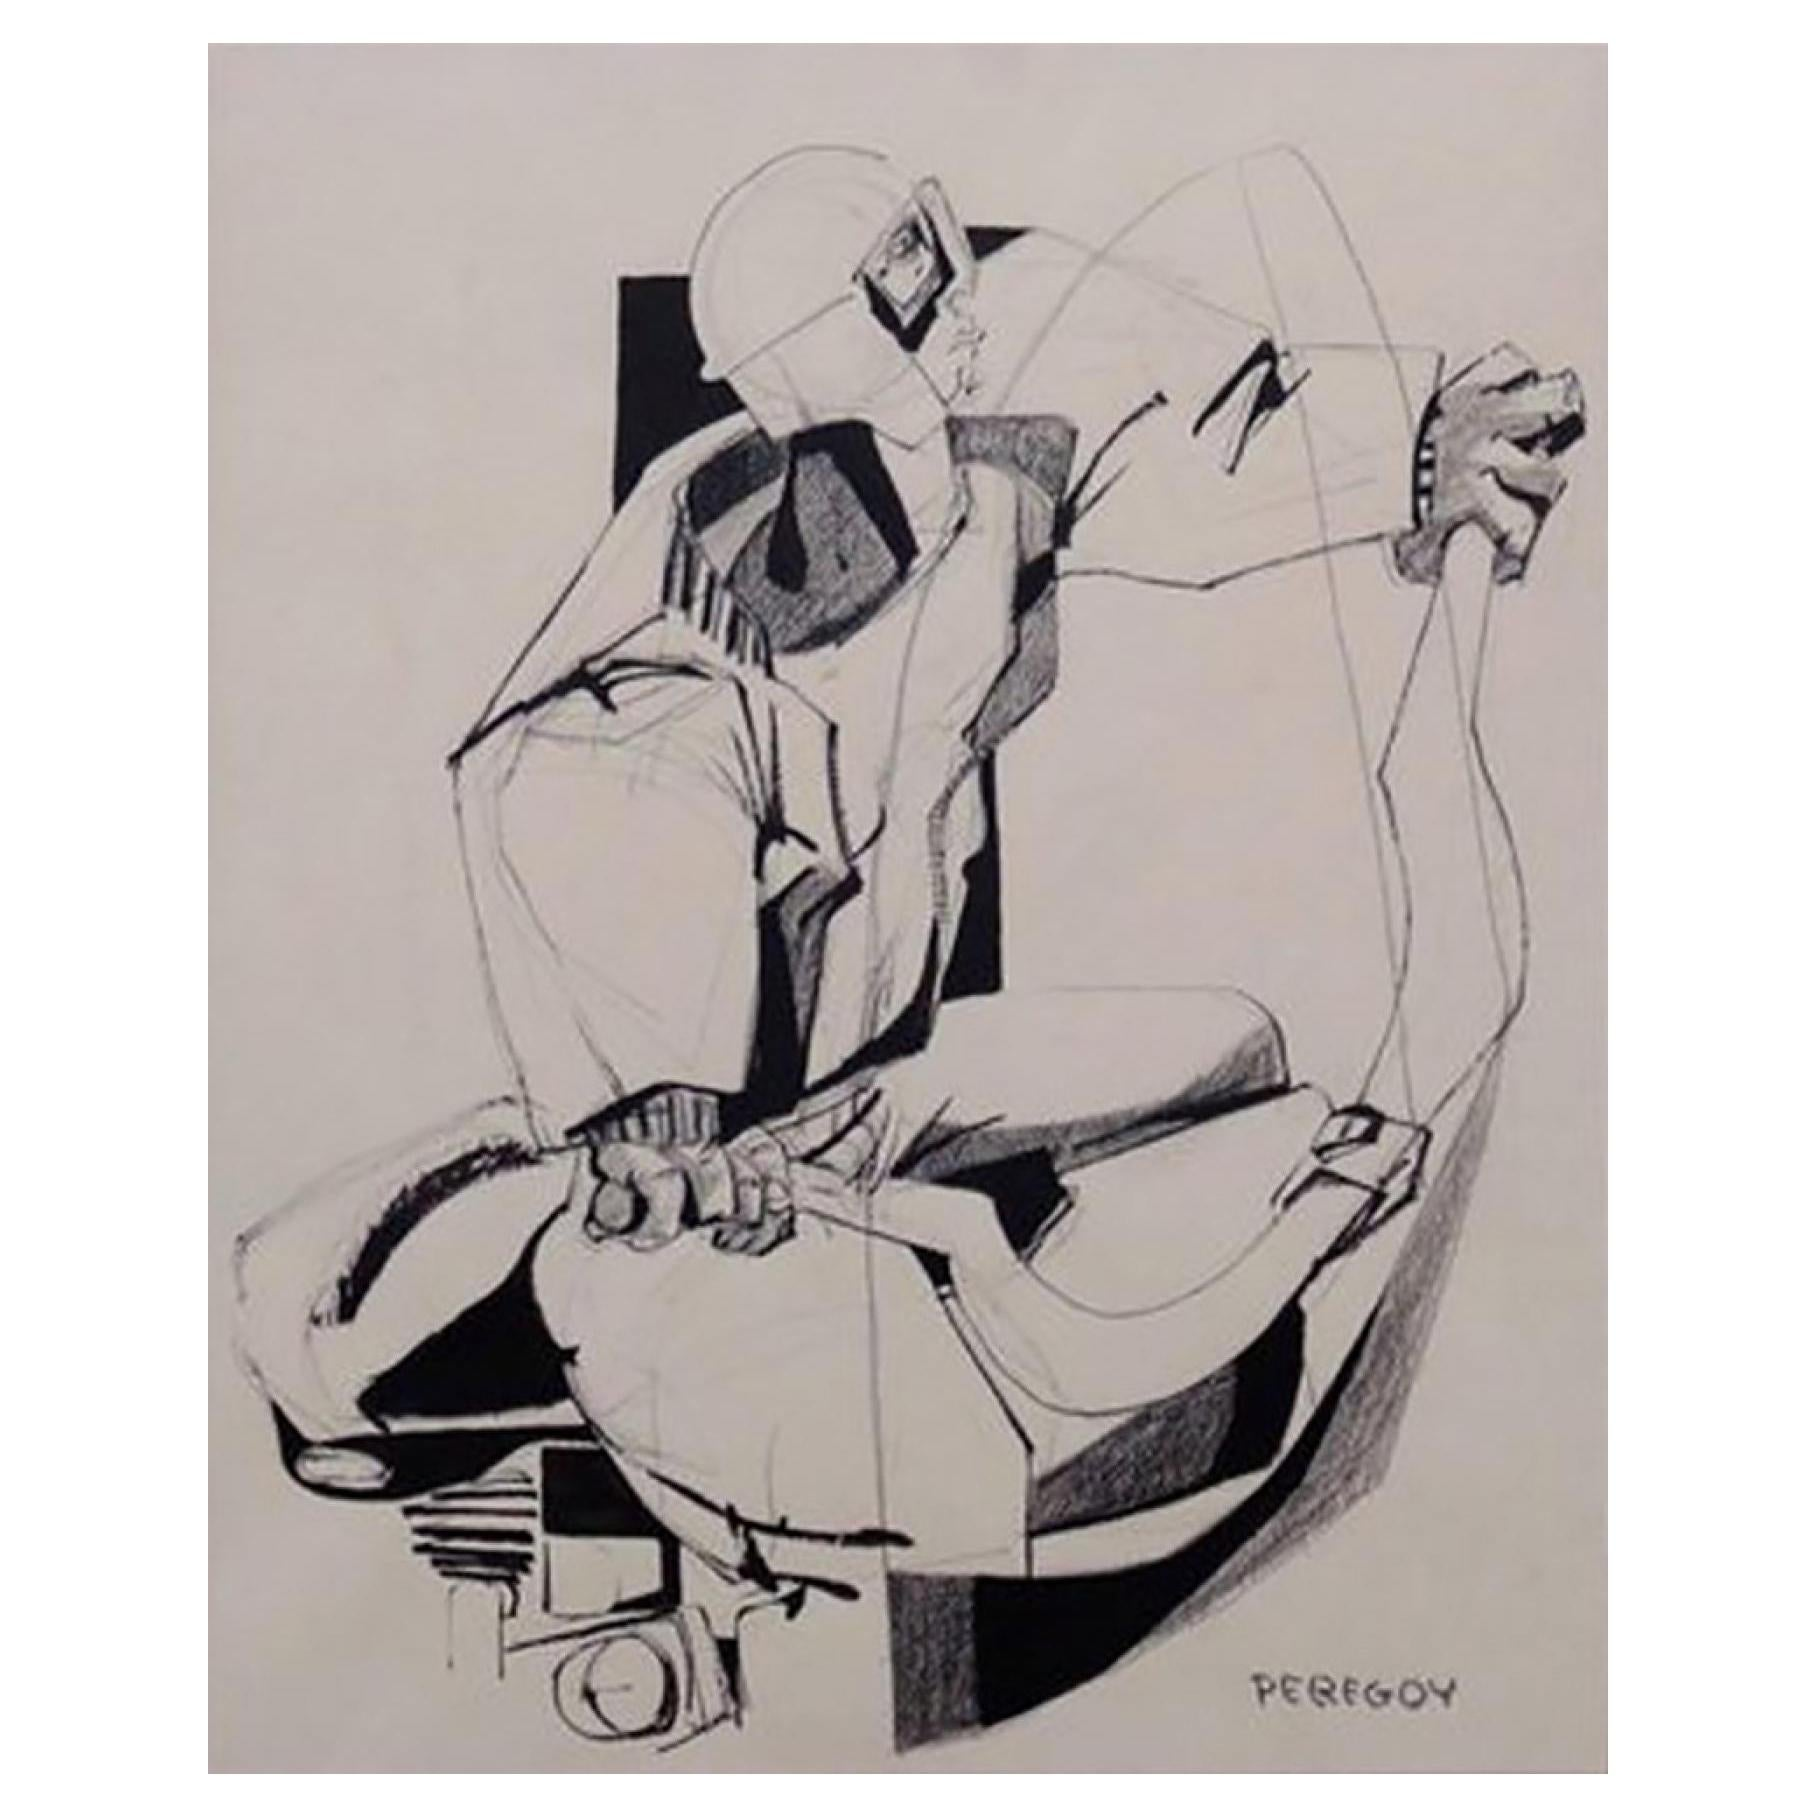 Mixed-Media Drawing of a Motorcyclist by Walter Peregoy